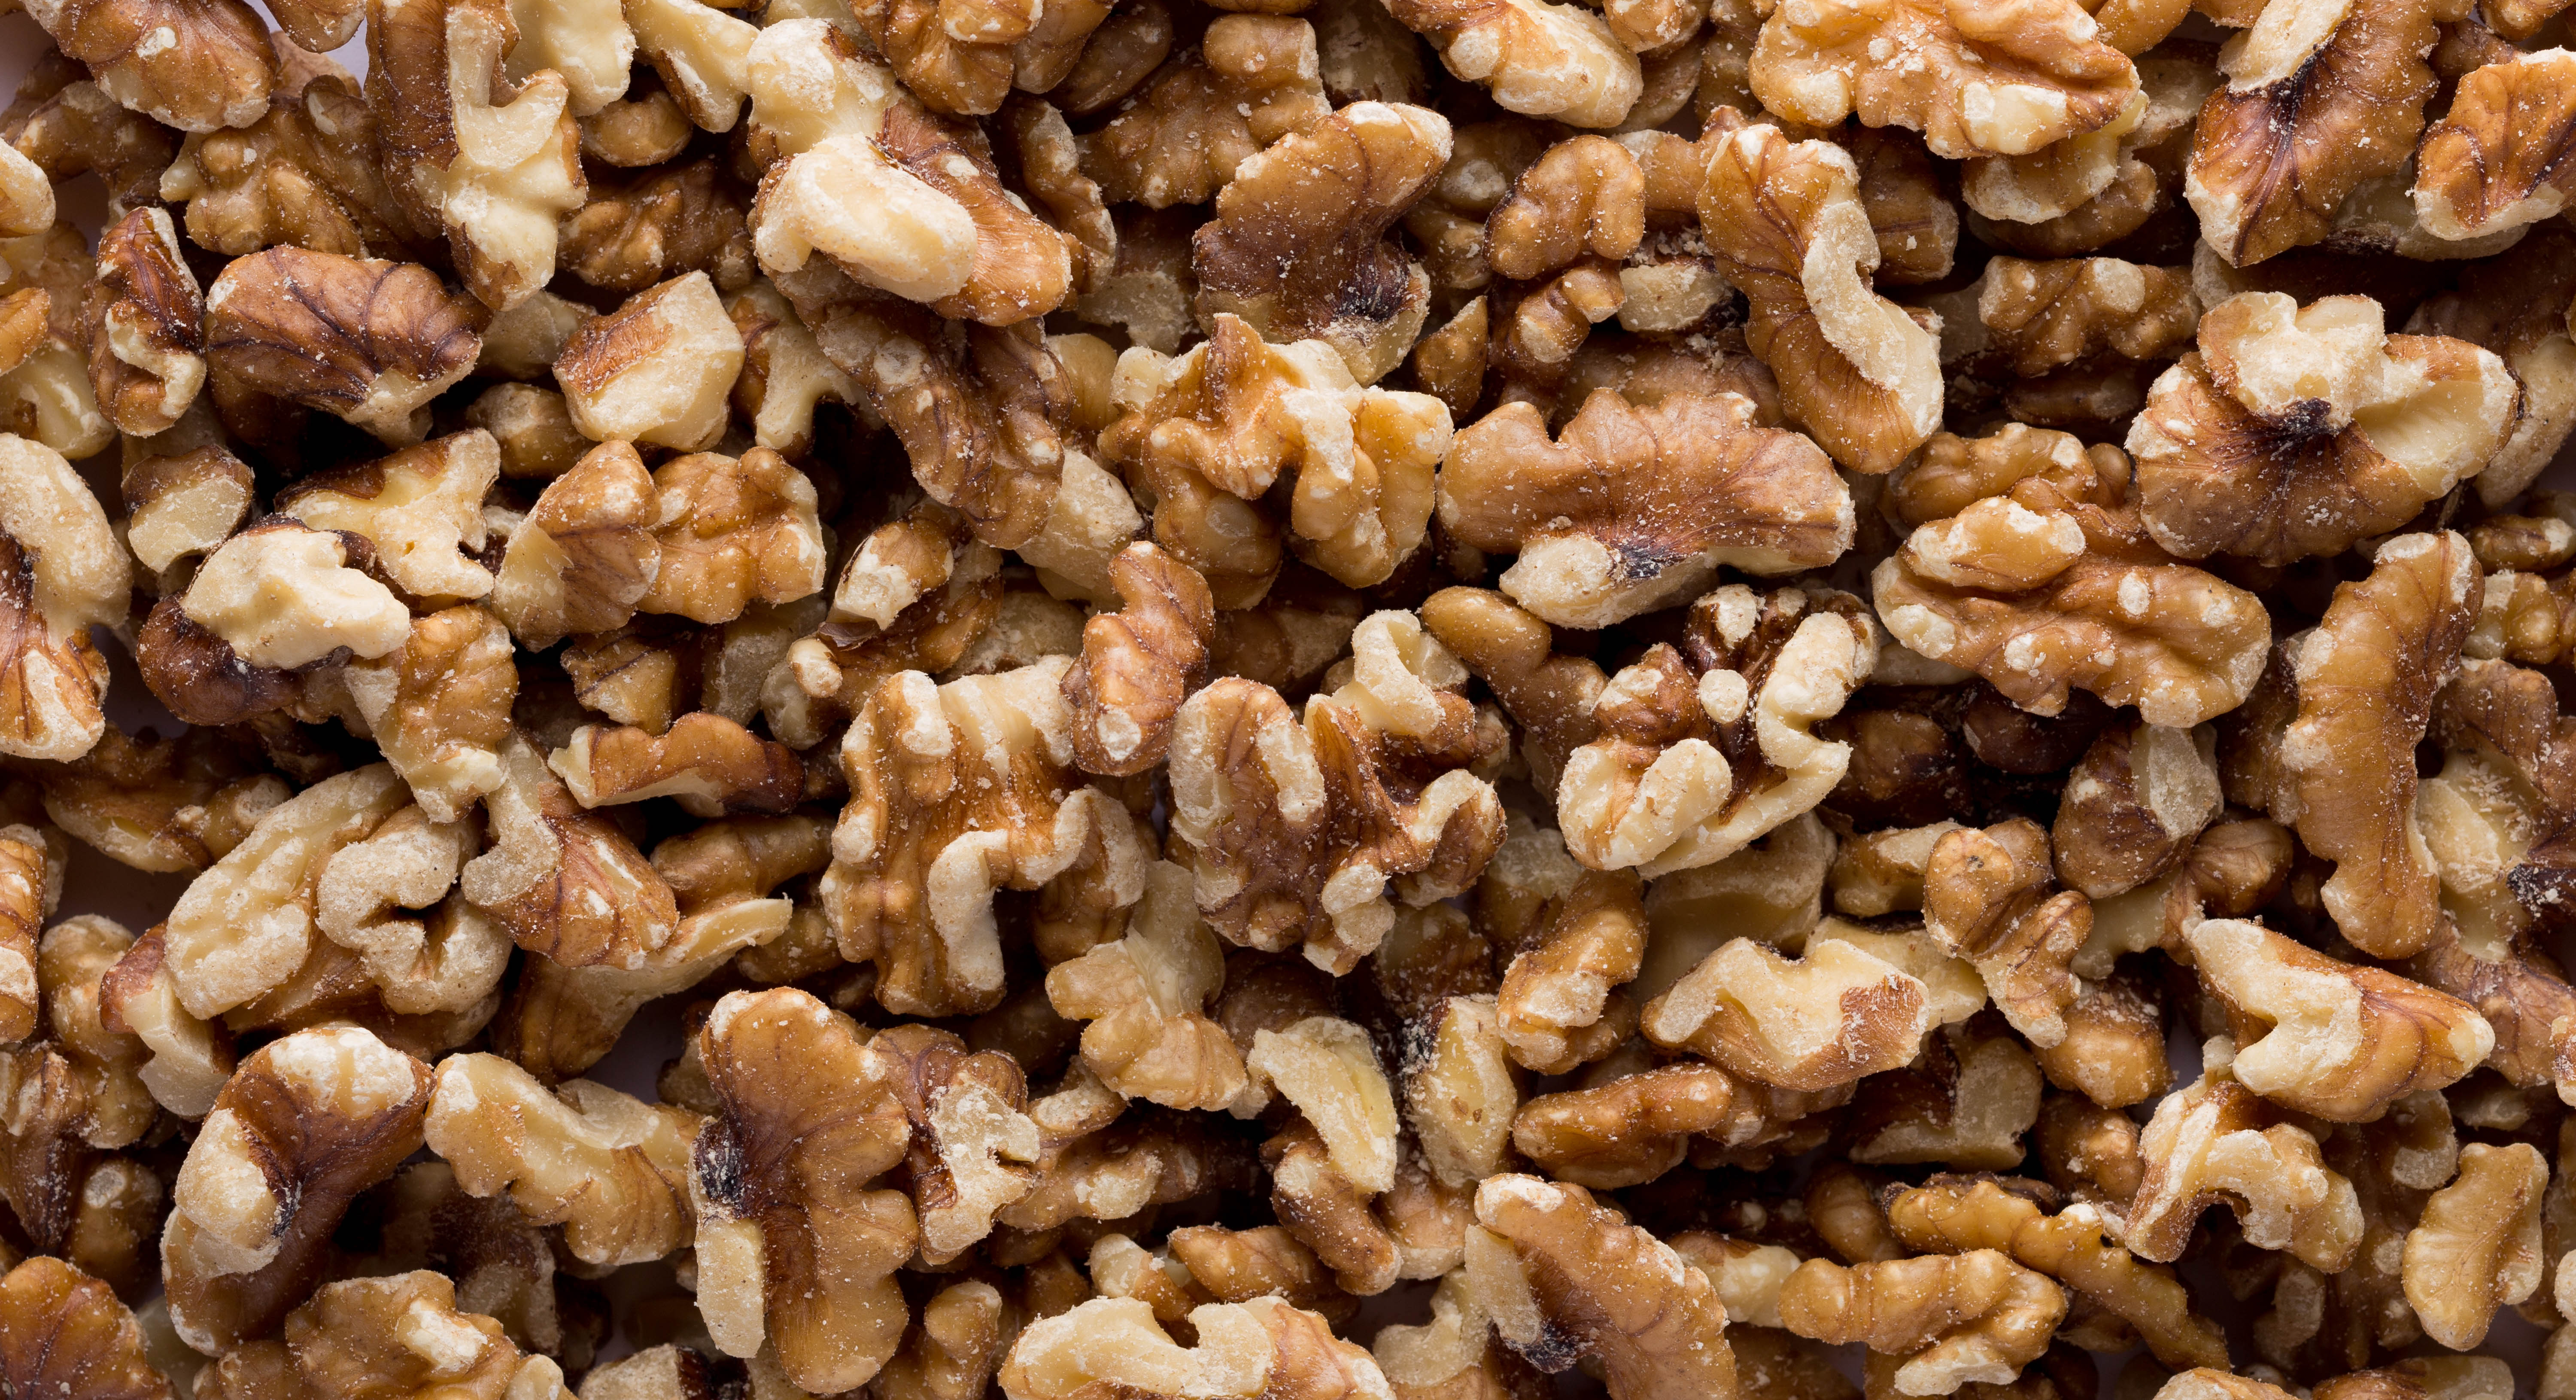 6 Facts and 18 Recipes That Will Make You Fall in Love With Walnuts